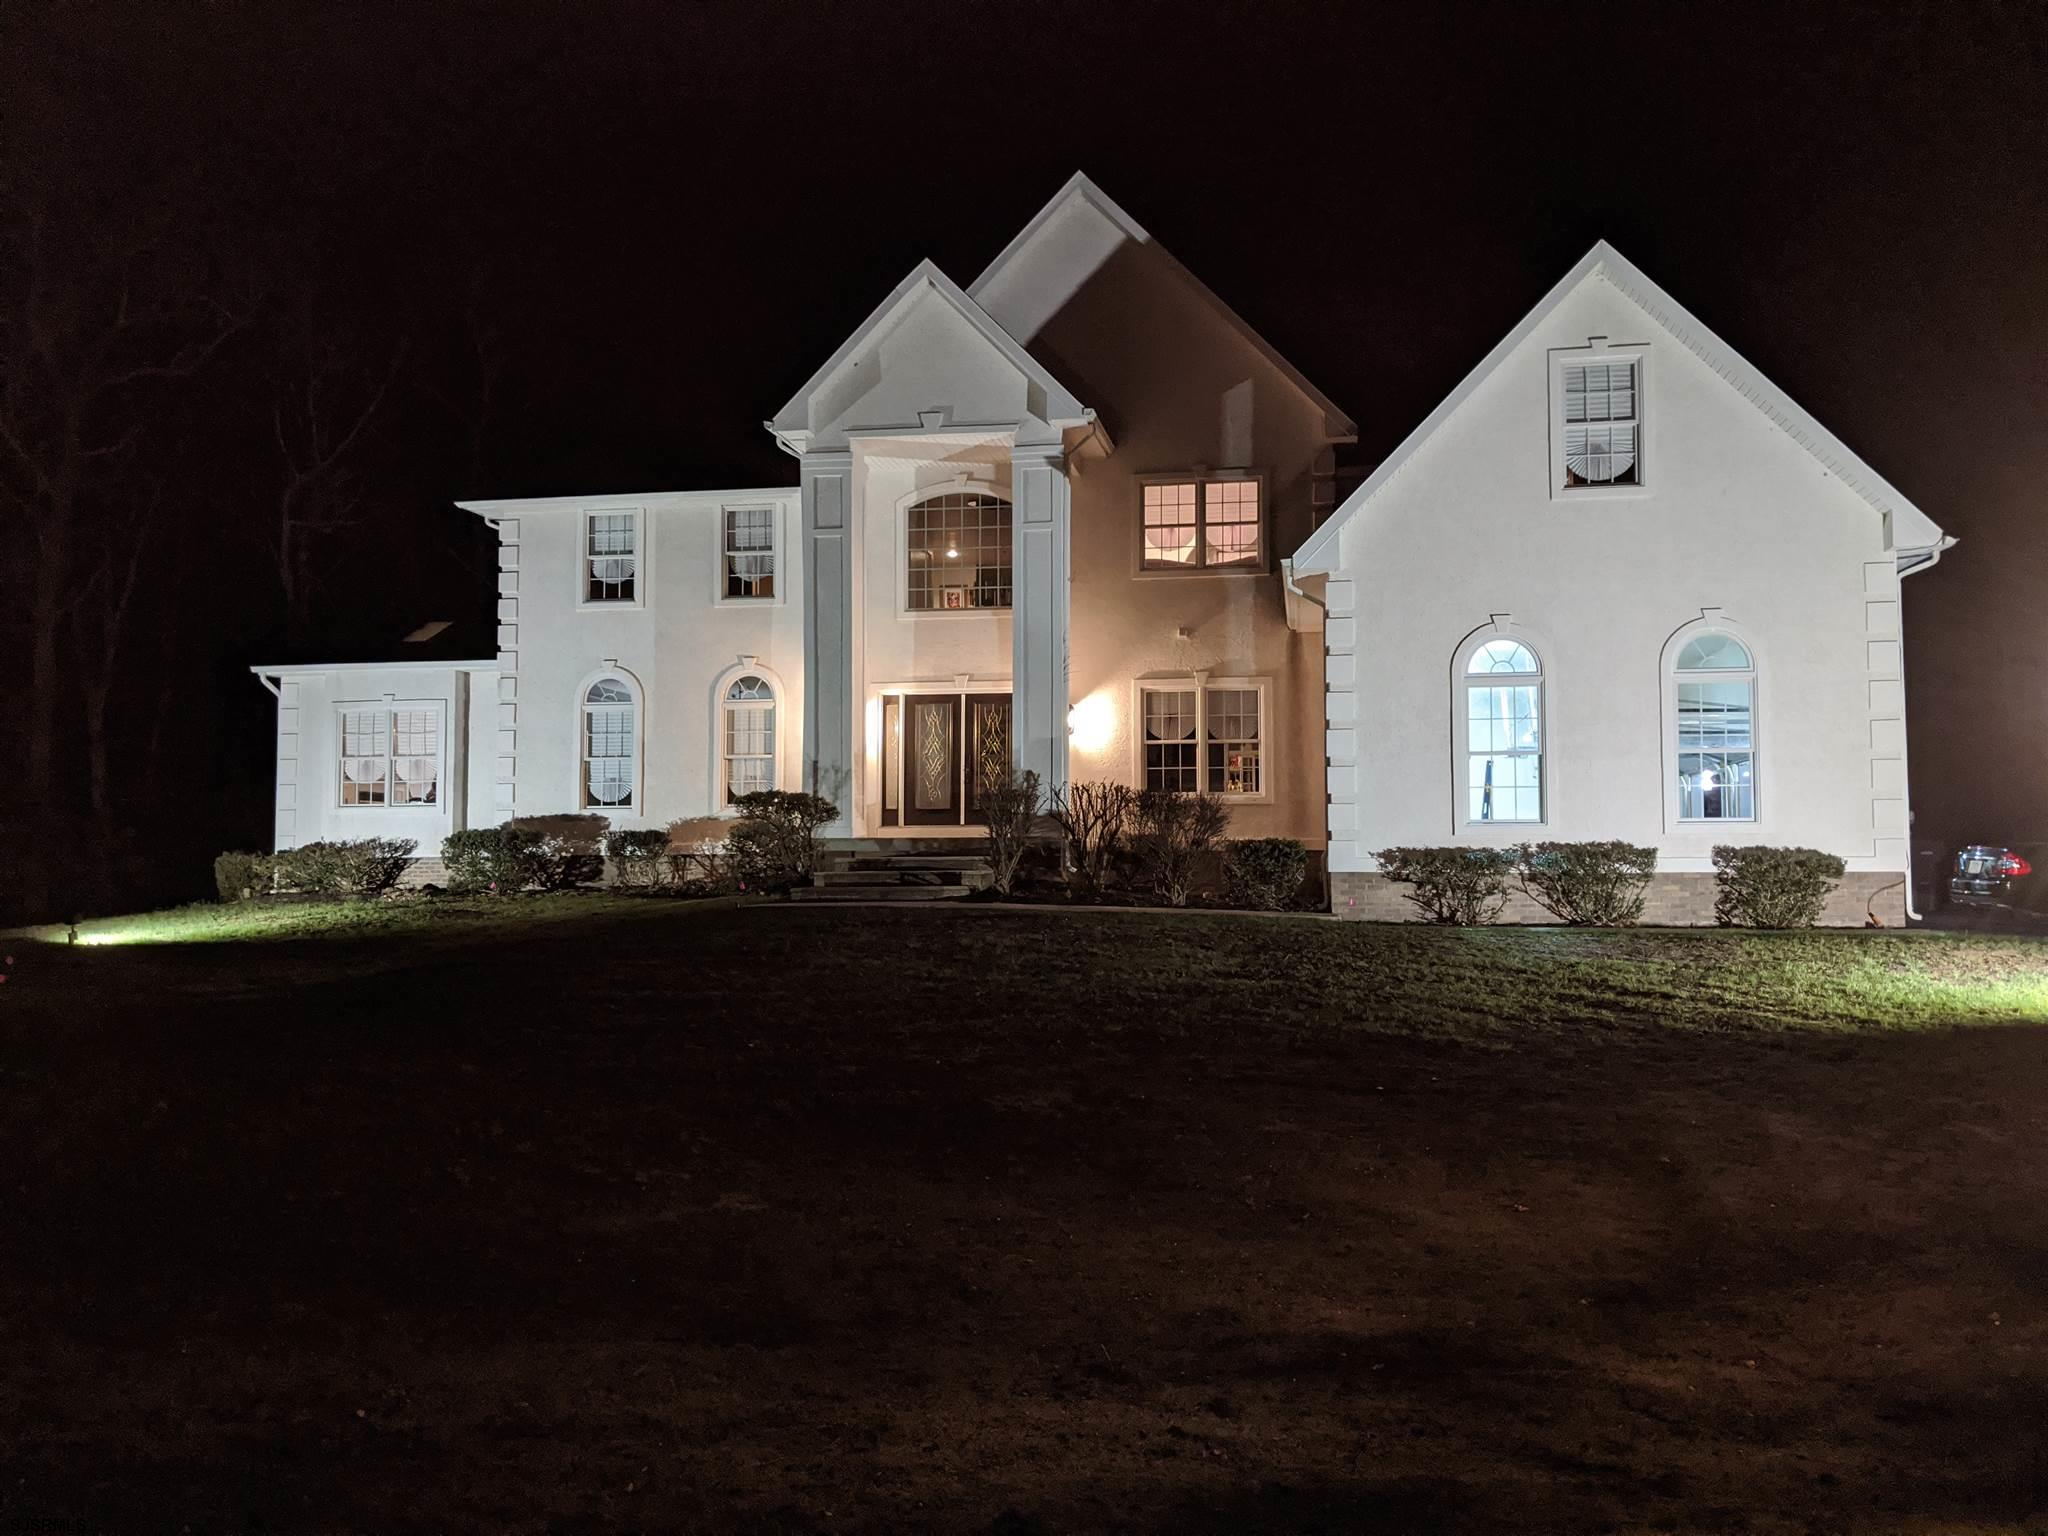 Welcome Home to a Custom Built 4,390+- sq.ft. 4 Bedroom 3.5 Baths 2 Story Home on 5 Acres of peace a